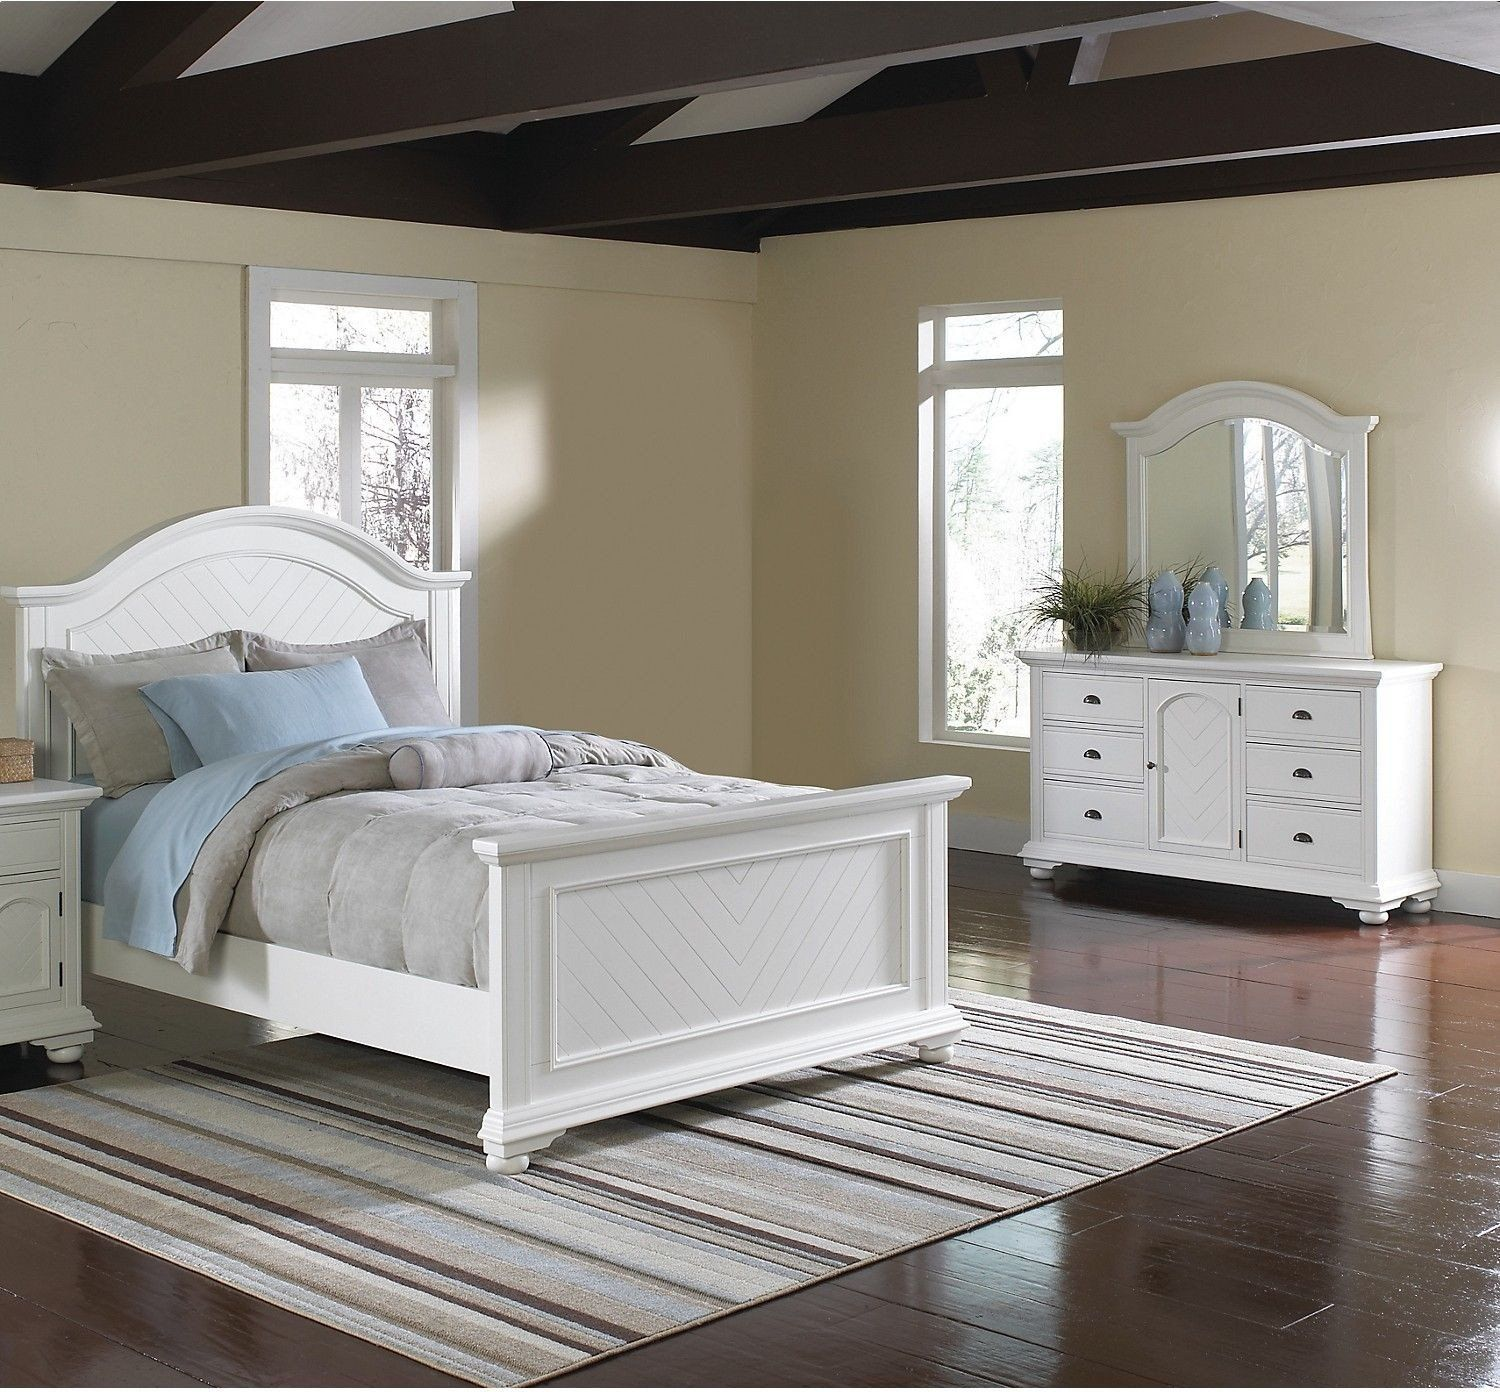 Queen Bedroom Set White Elegant Add A Fresh New Look To Your Home With This Brook Bedroom In 2020 White Bedroom Set White Bedroom Set Queen Bedroom Sets Queen